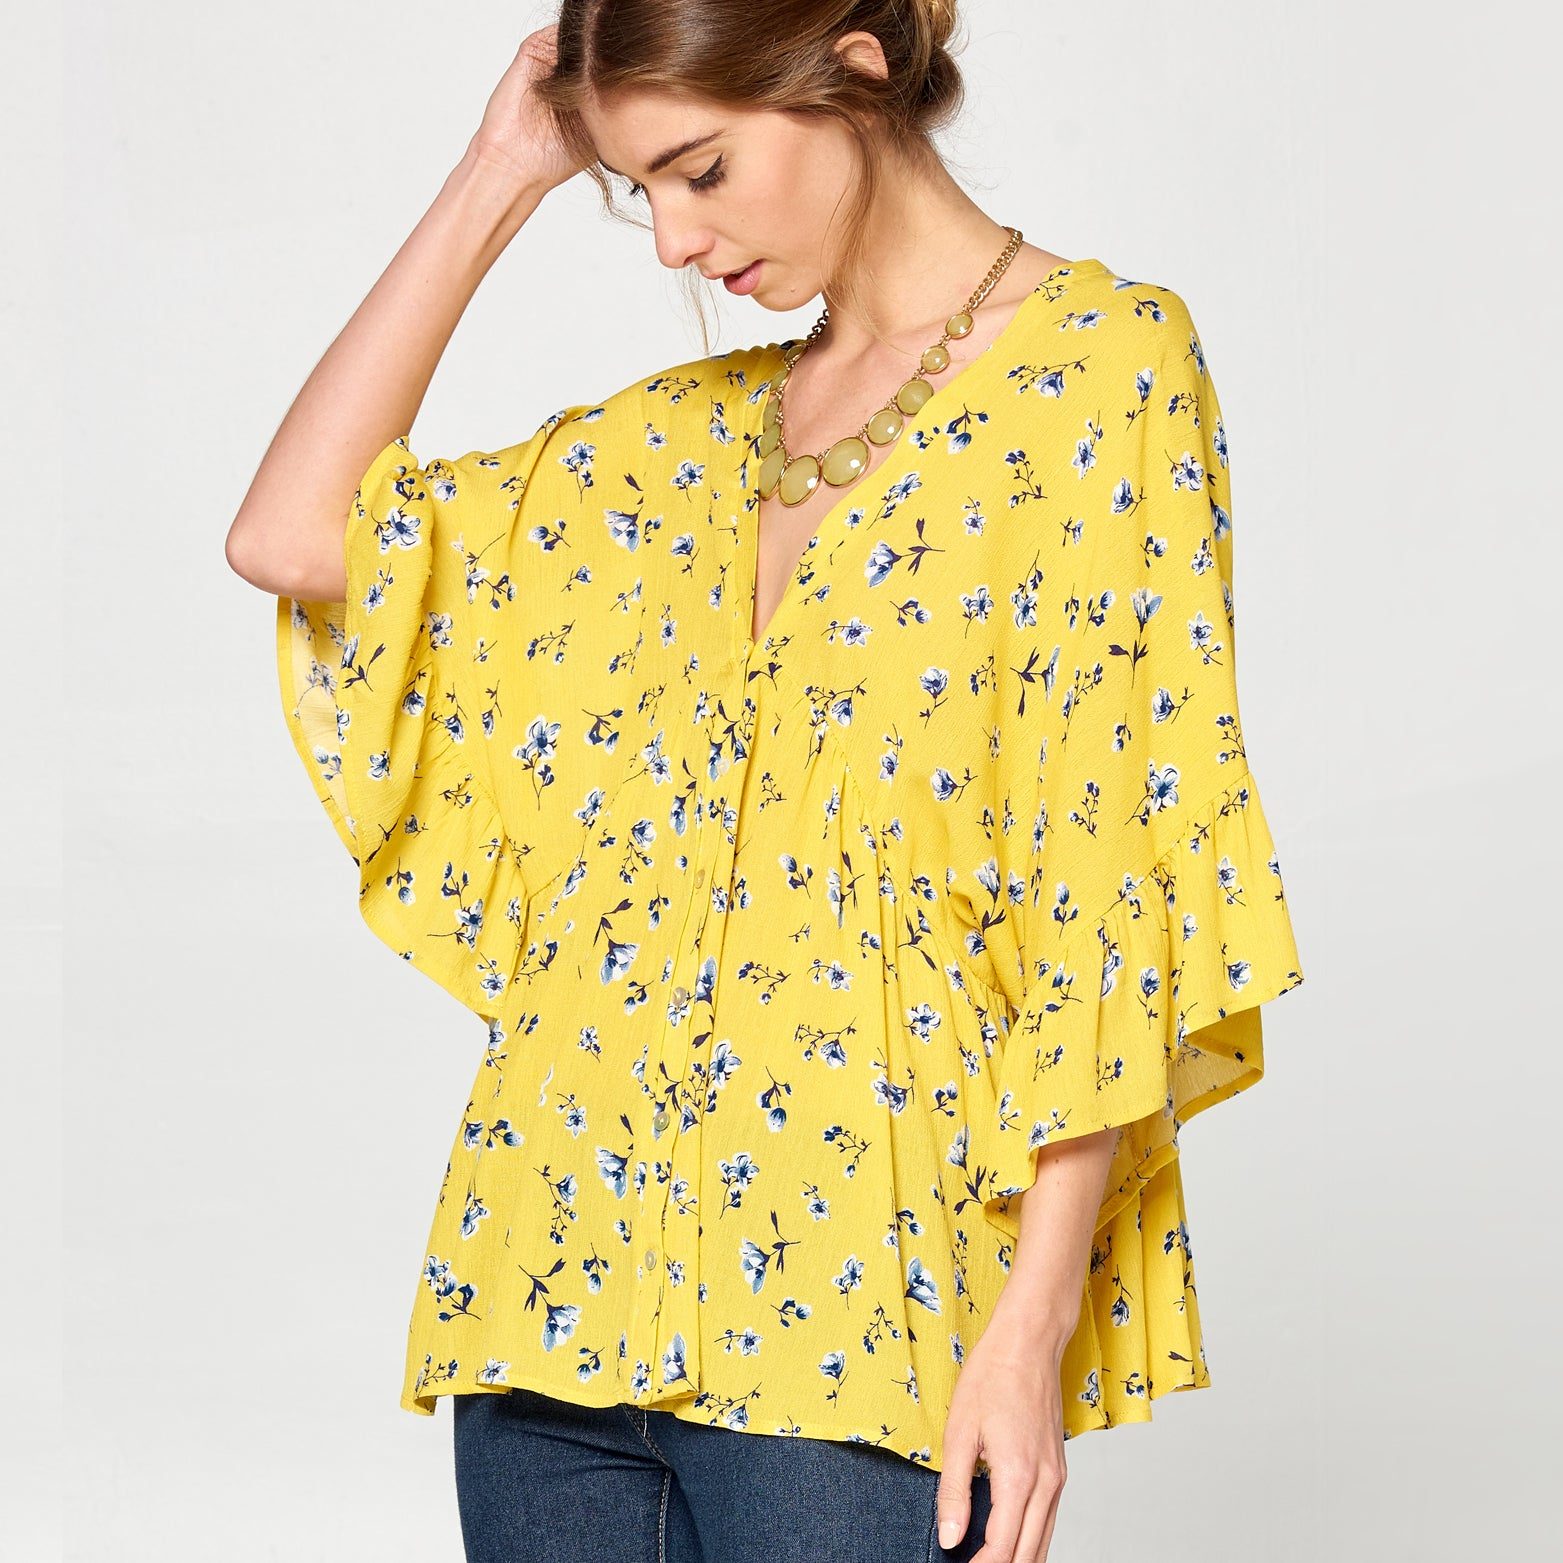 Calico Floral Woven Top - Love, Kuza